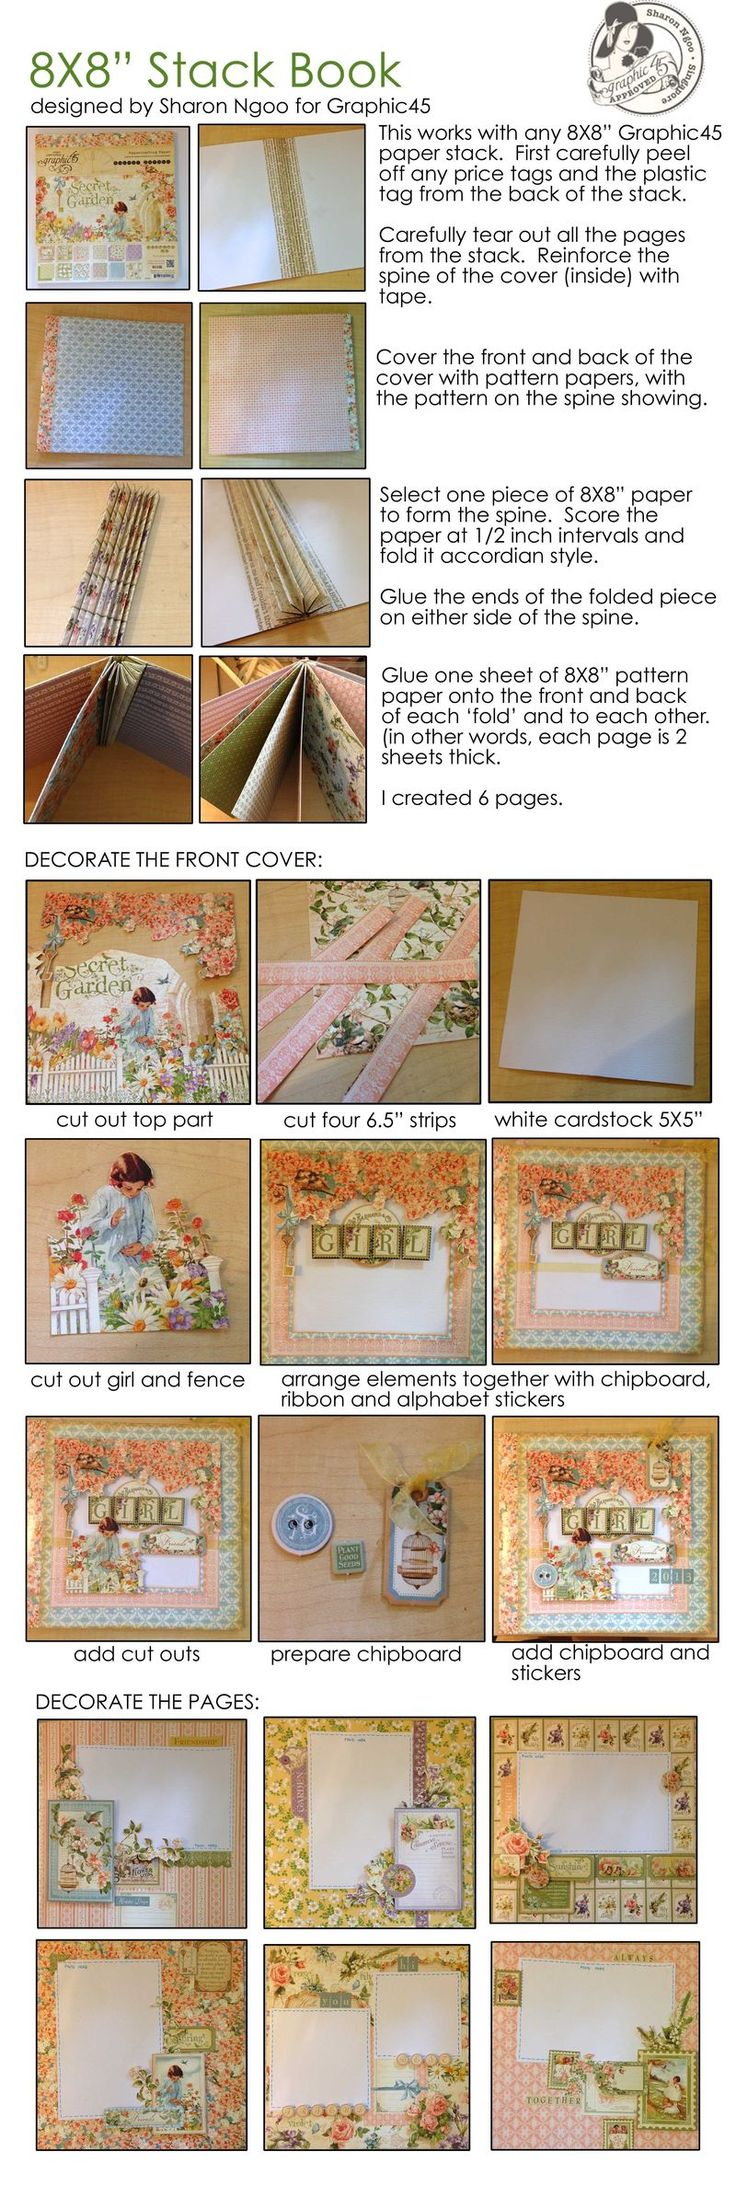 Learn how to make a mini album using this amazing tutorial by @Sharon Macdonald Macdonald Ngoo! All you need is an 8x8 Secret Garden paper pad. #graphic45 #tutorials